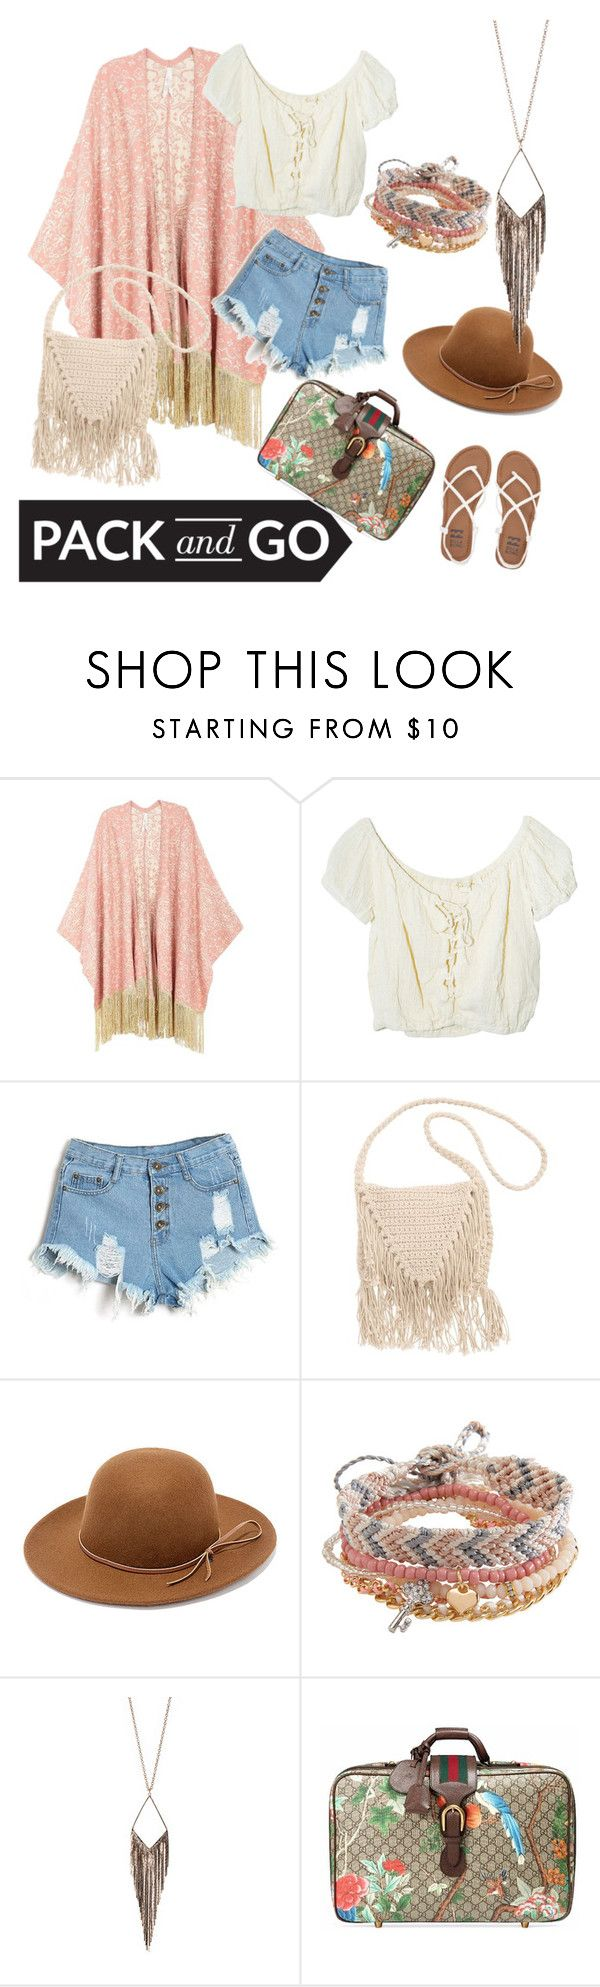 """Untitled #116"" by dolce-a ❤ liked on Polyvore featuring Melissa McCarthy Seven7, Jens Pirate Booty, Billabong, RHYTHM, Aéropostale, Jules Smith, Gucci and plus size clothing"